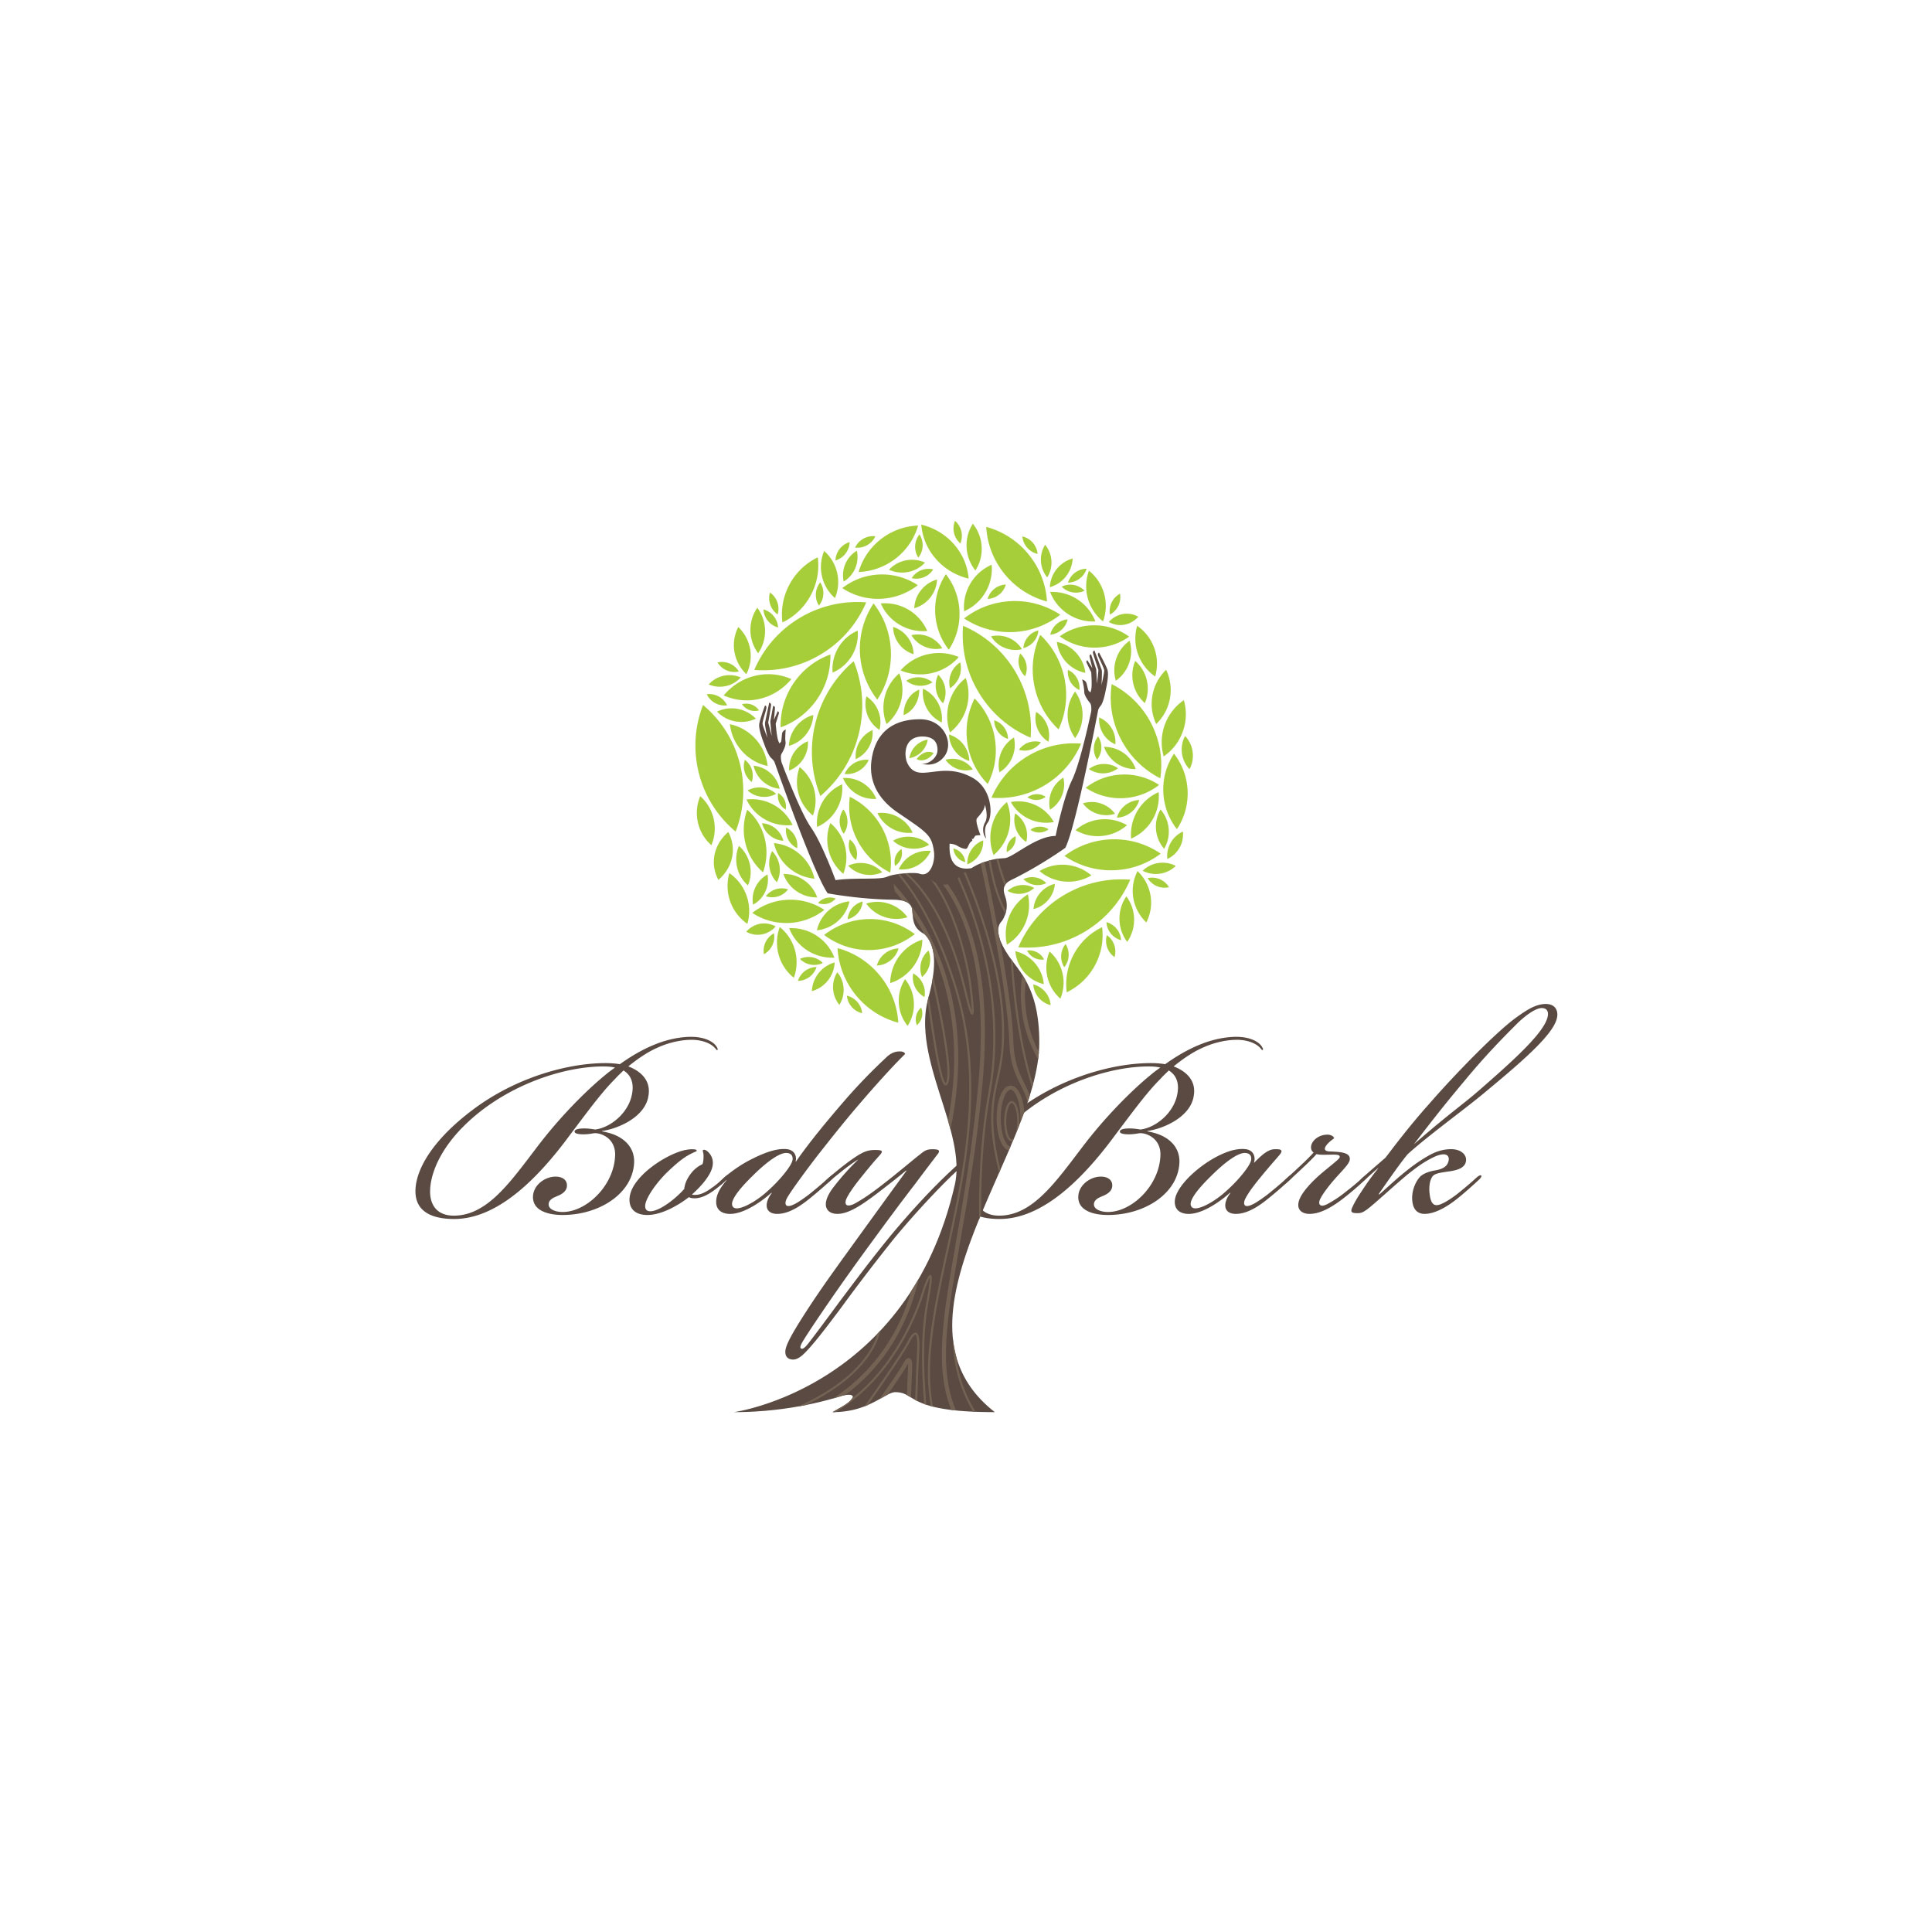 ND-bodybark-logo.jpg